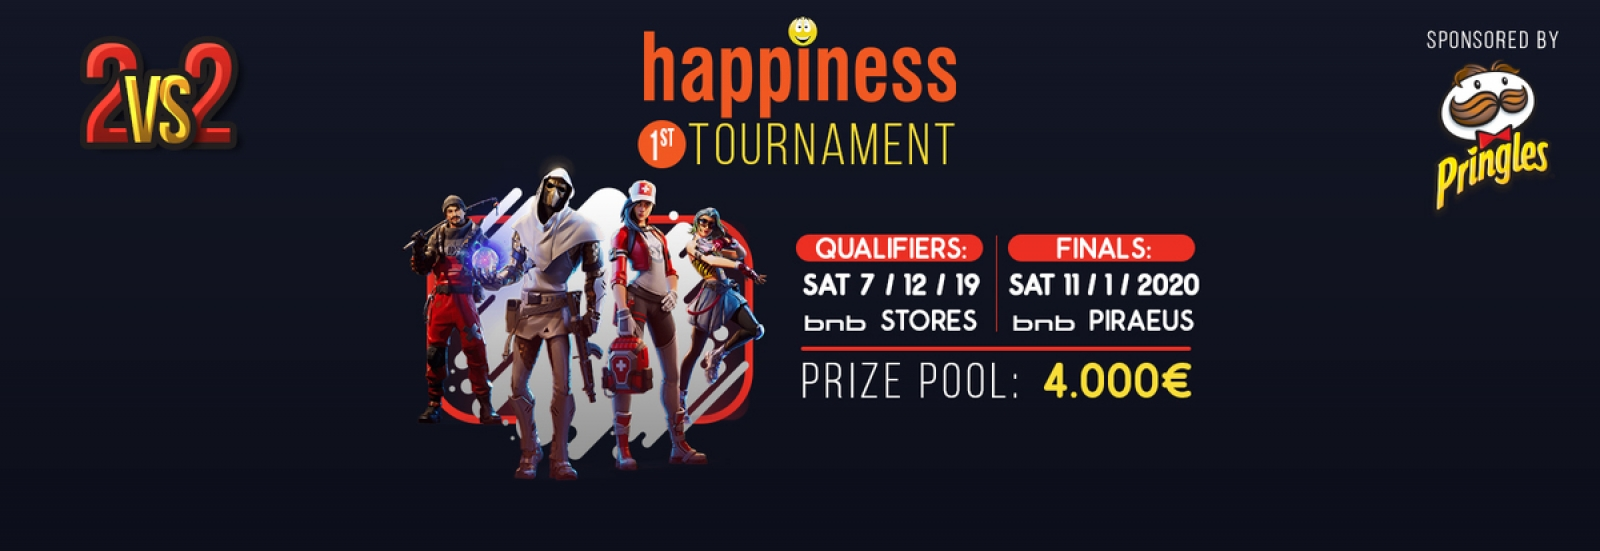 1st happiness Fortnite Tournament sponsored by Pringles